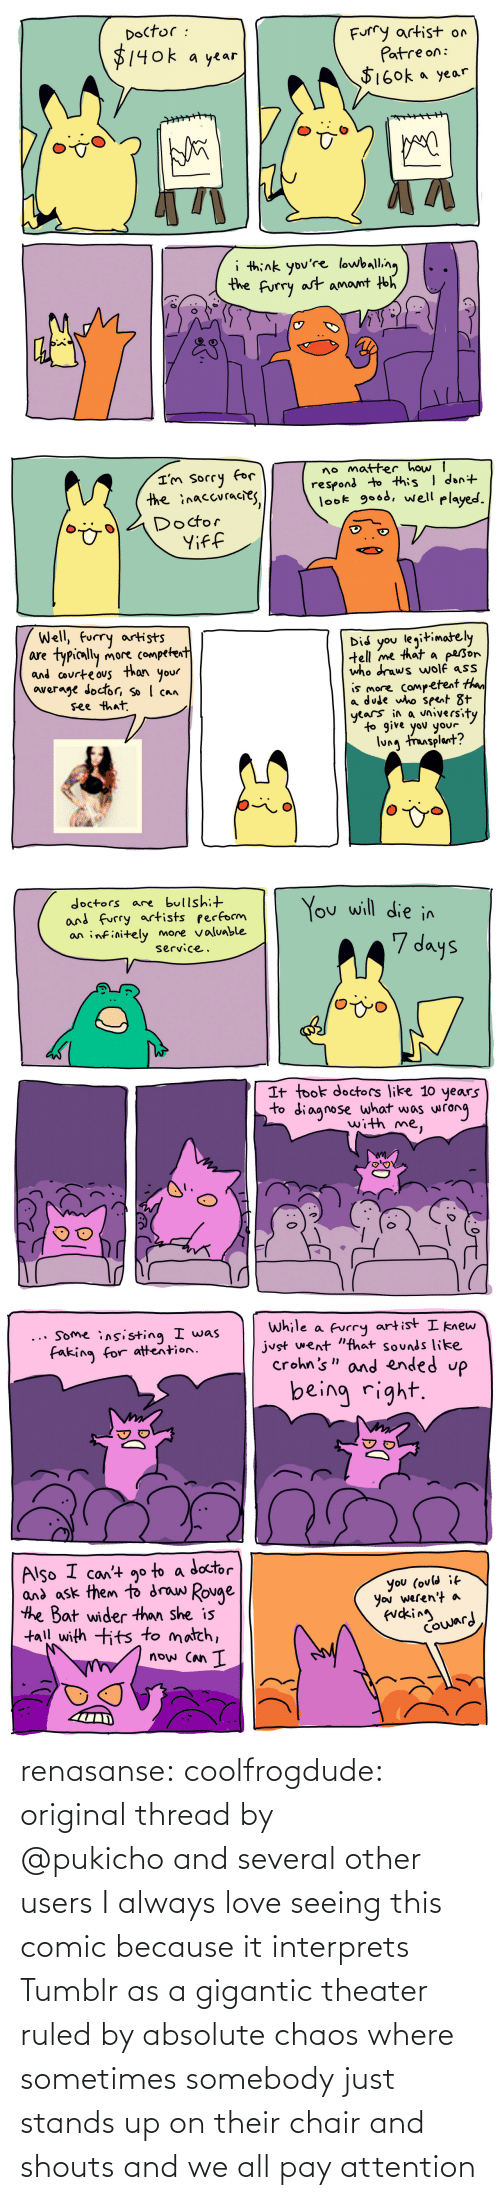 attention: renasanse: coolfrogdude: original thread by @pukichoand several other users I always love seeing this comic because it interprets Tumblr as a gigantic theater ruled by absolute chaos where sometimes somebody just stands up on their chair and shouts and we all pay attention